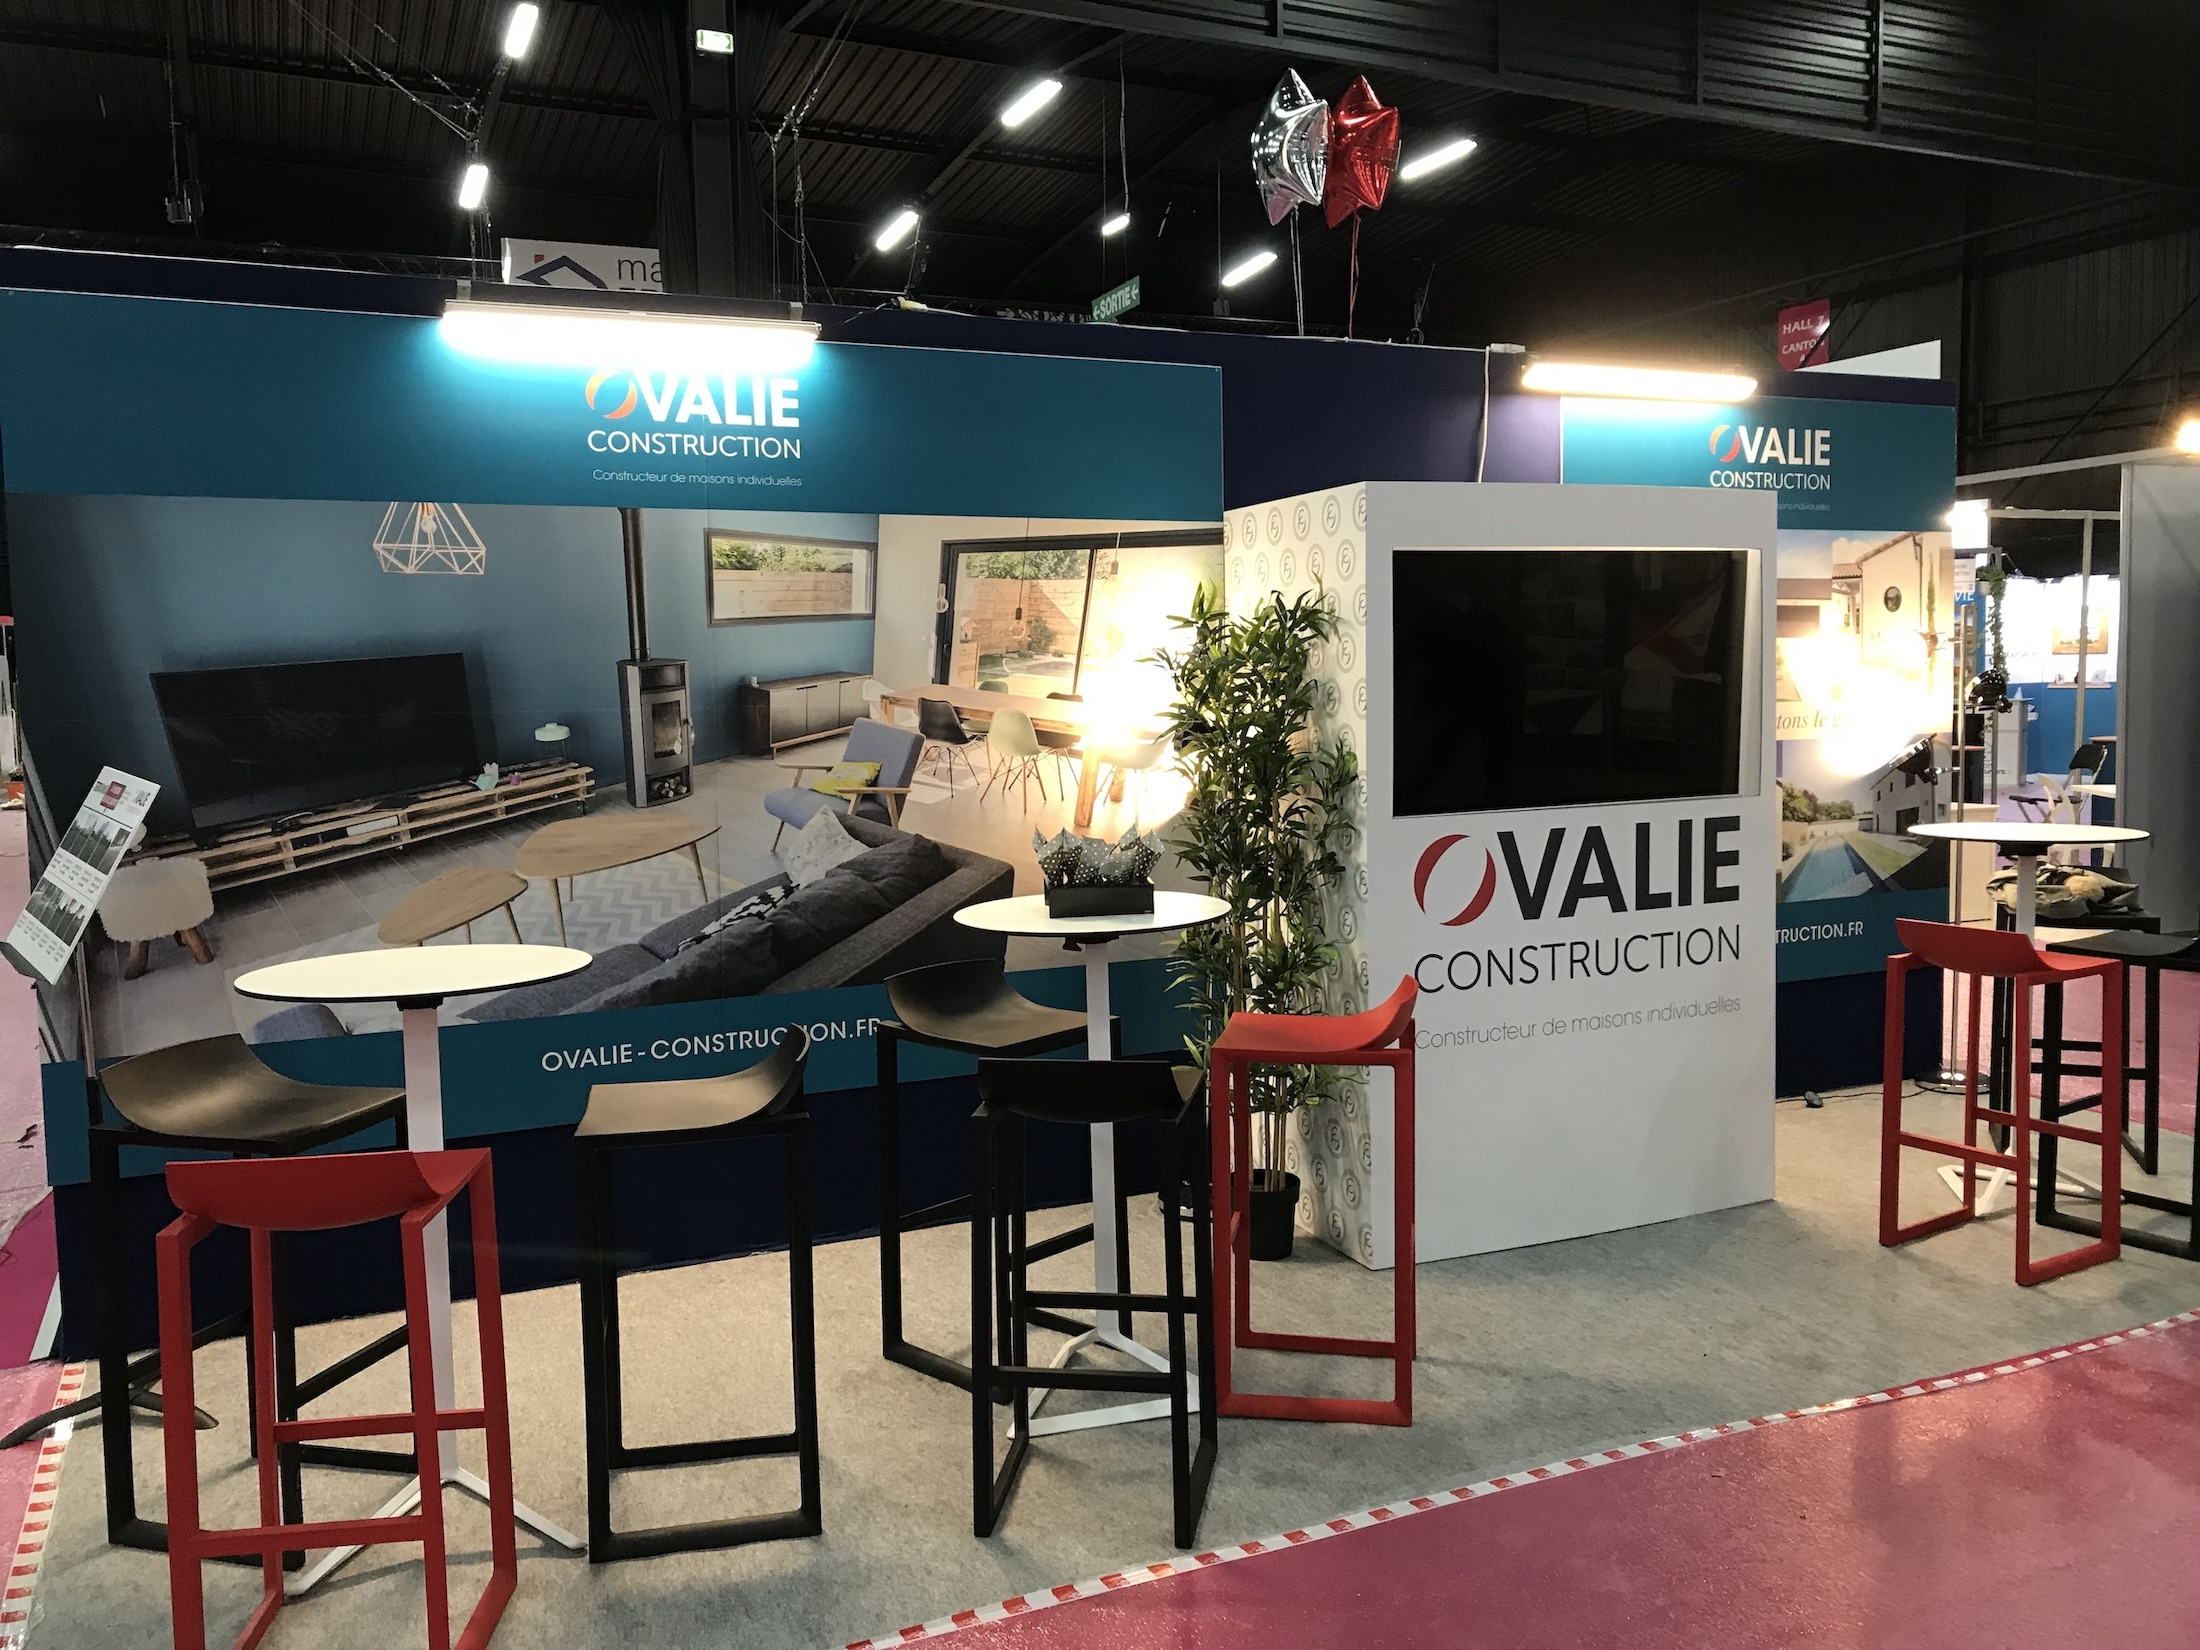 Stand Ovalie Salon Immobilier